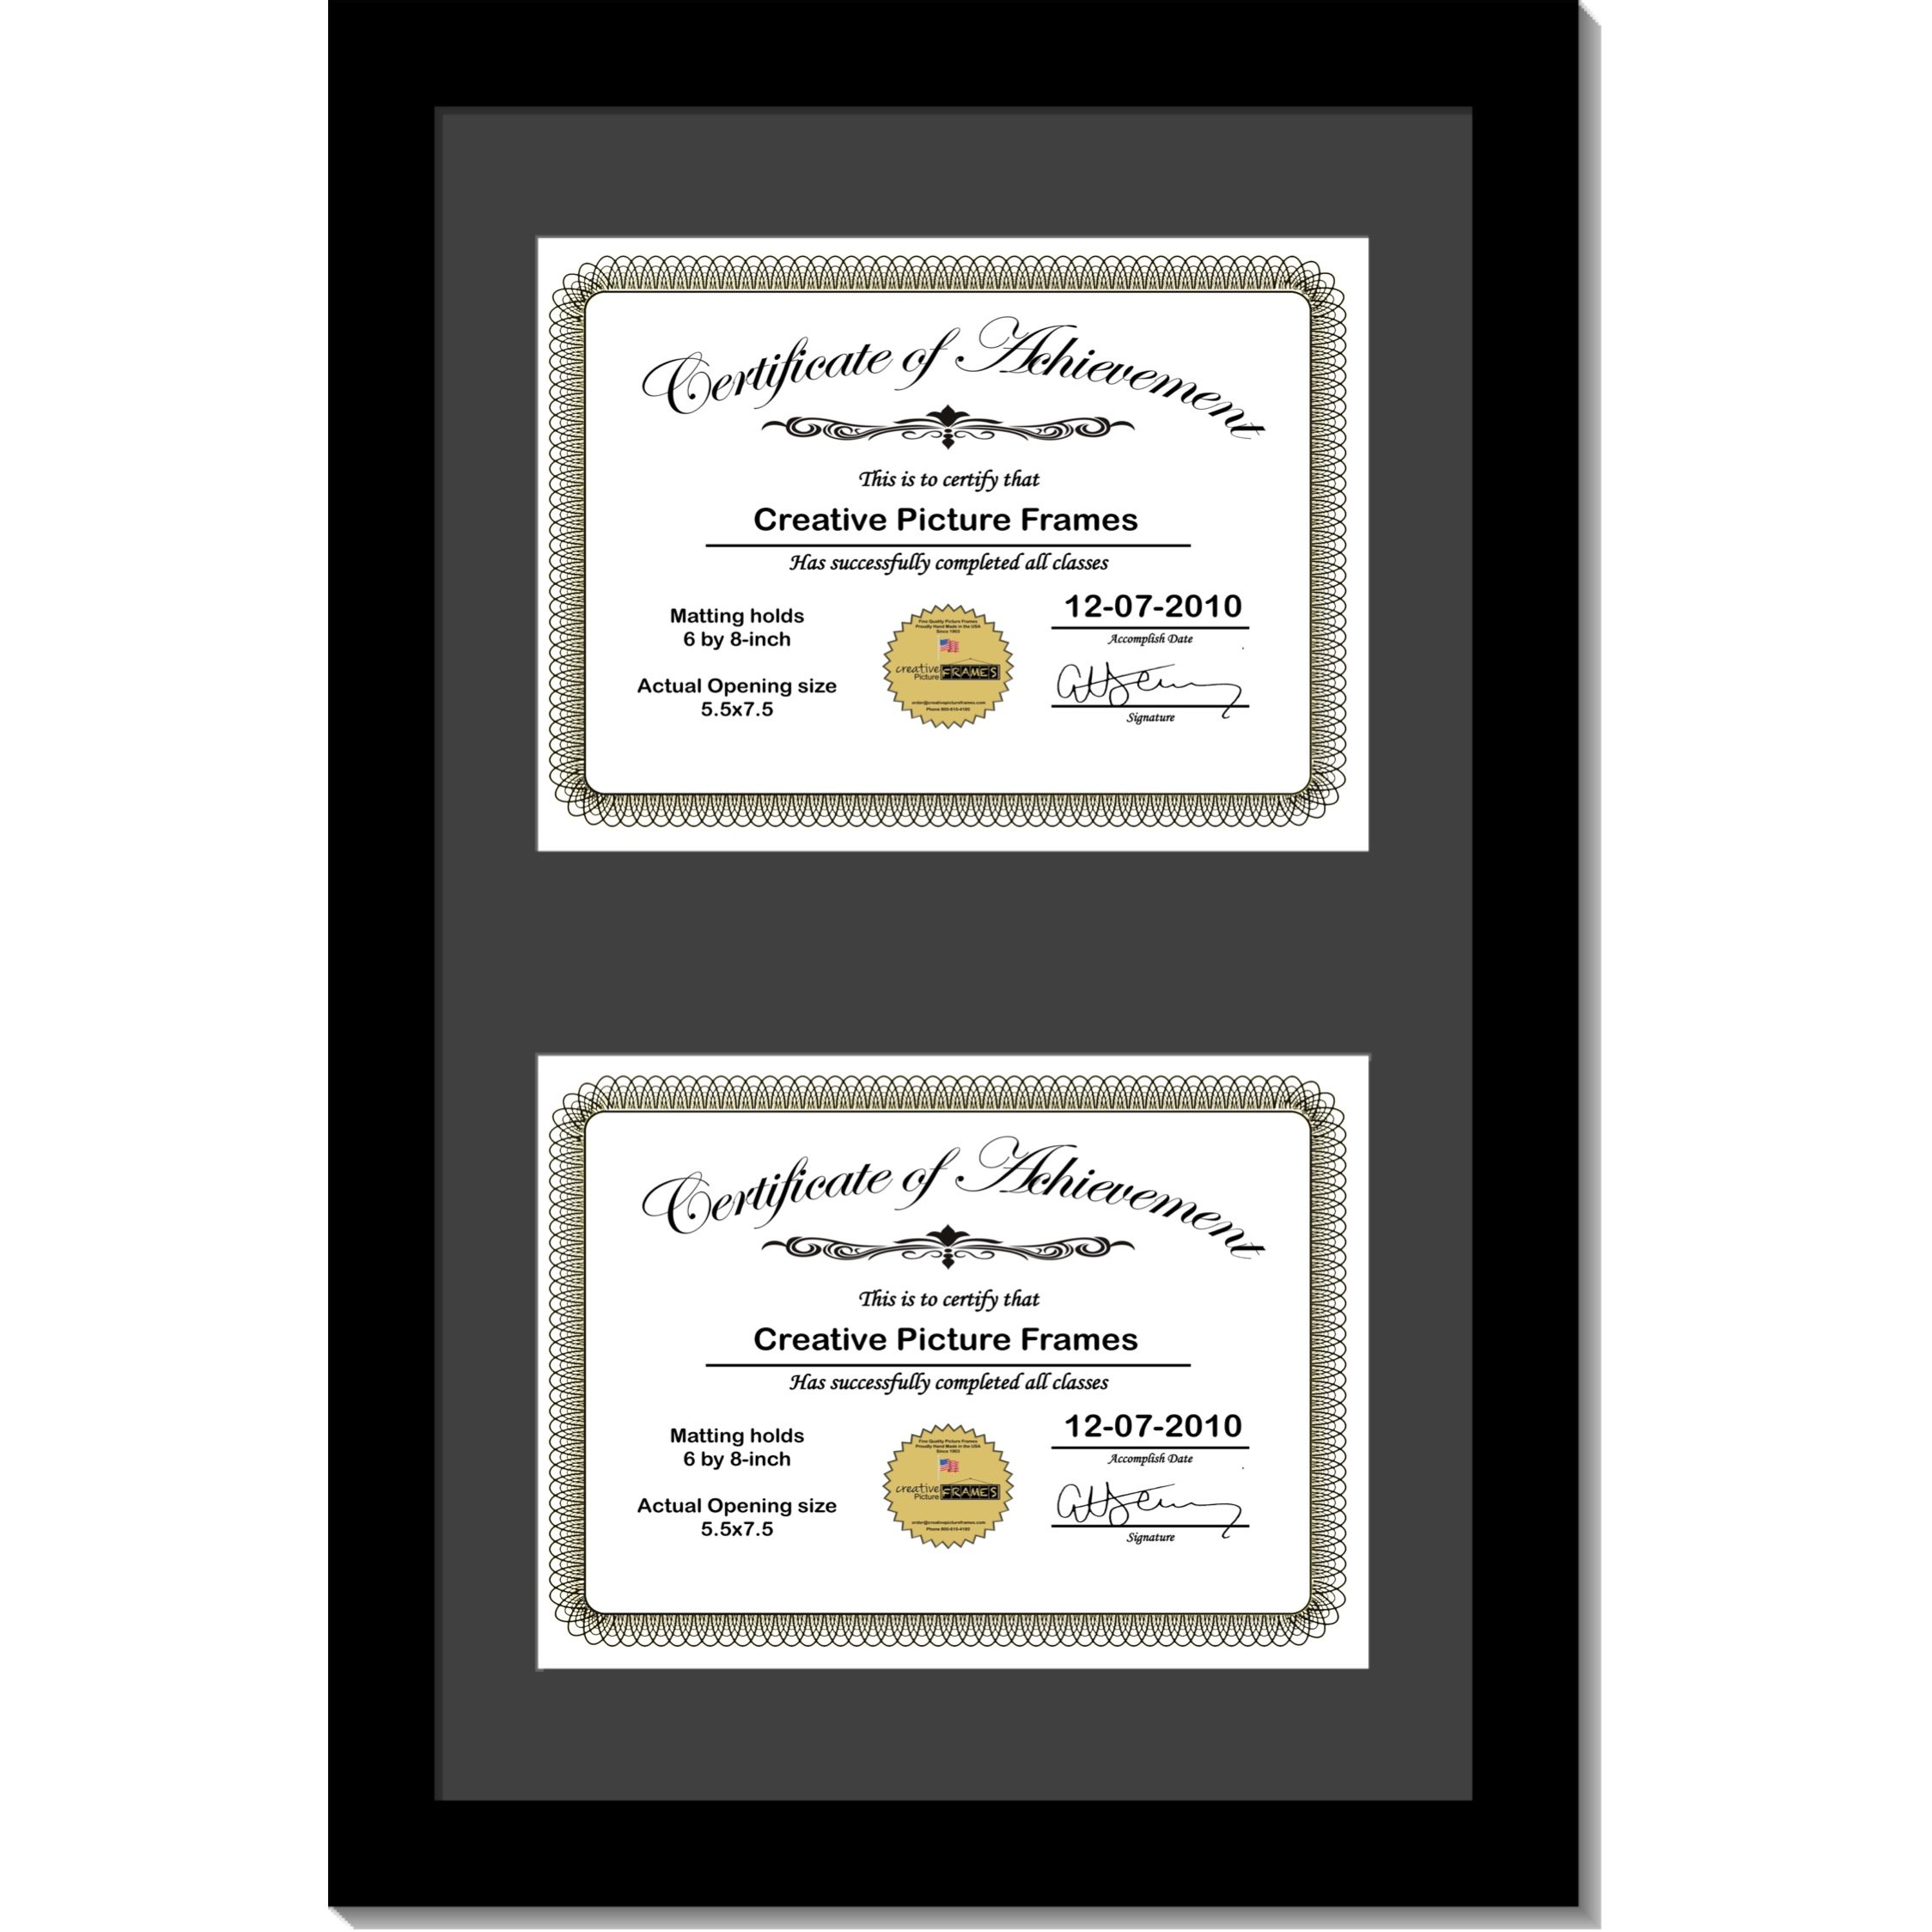 CreativePF [10x16bk-b] Black Vertical Double Diploma Frame with 2 Opening Black Matting | Holds 2-6x8-inch Documents with Installed Wall Hanger